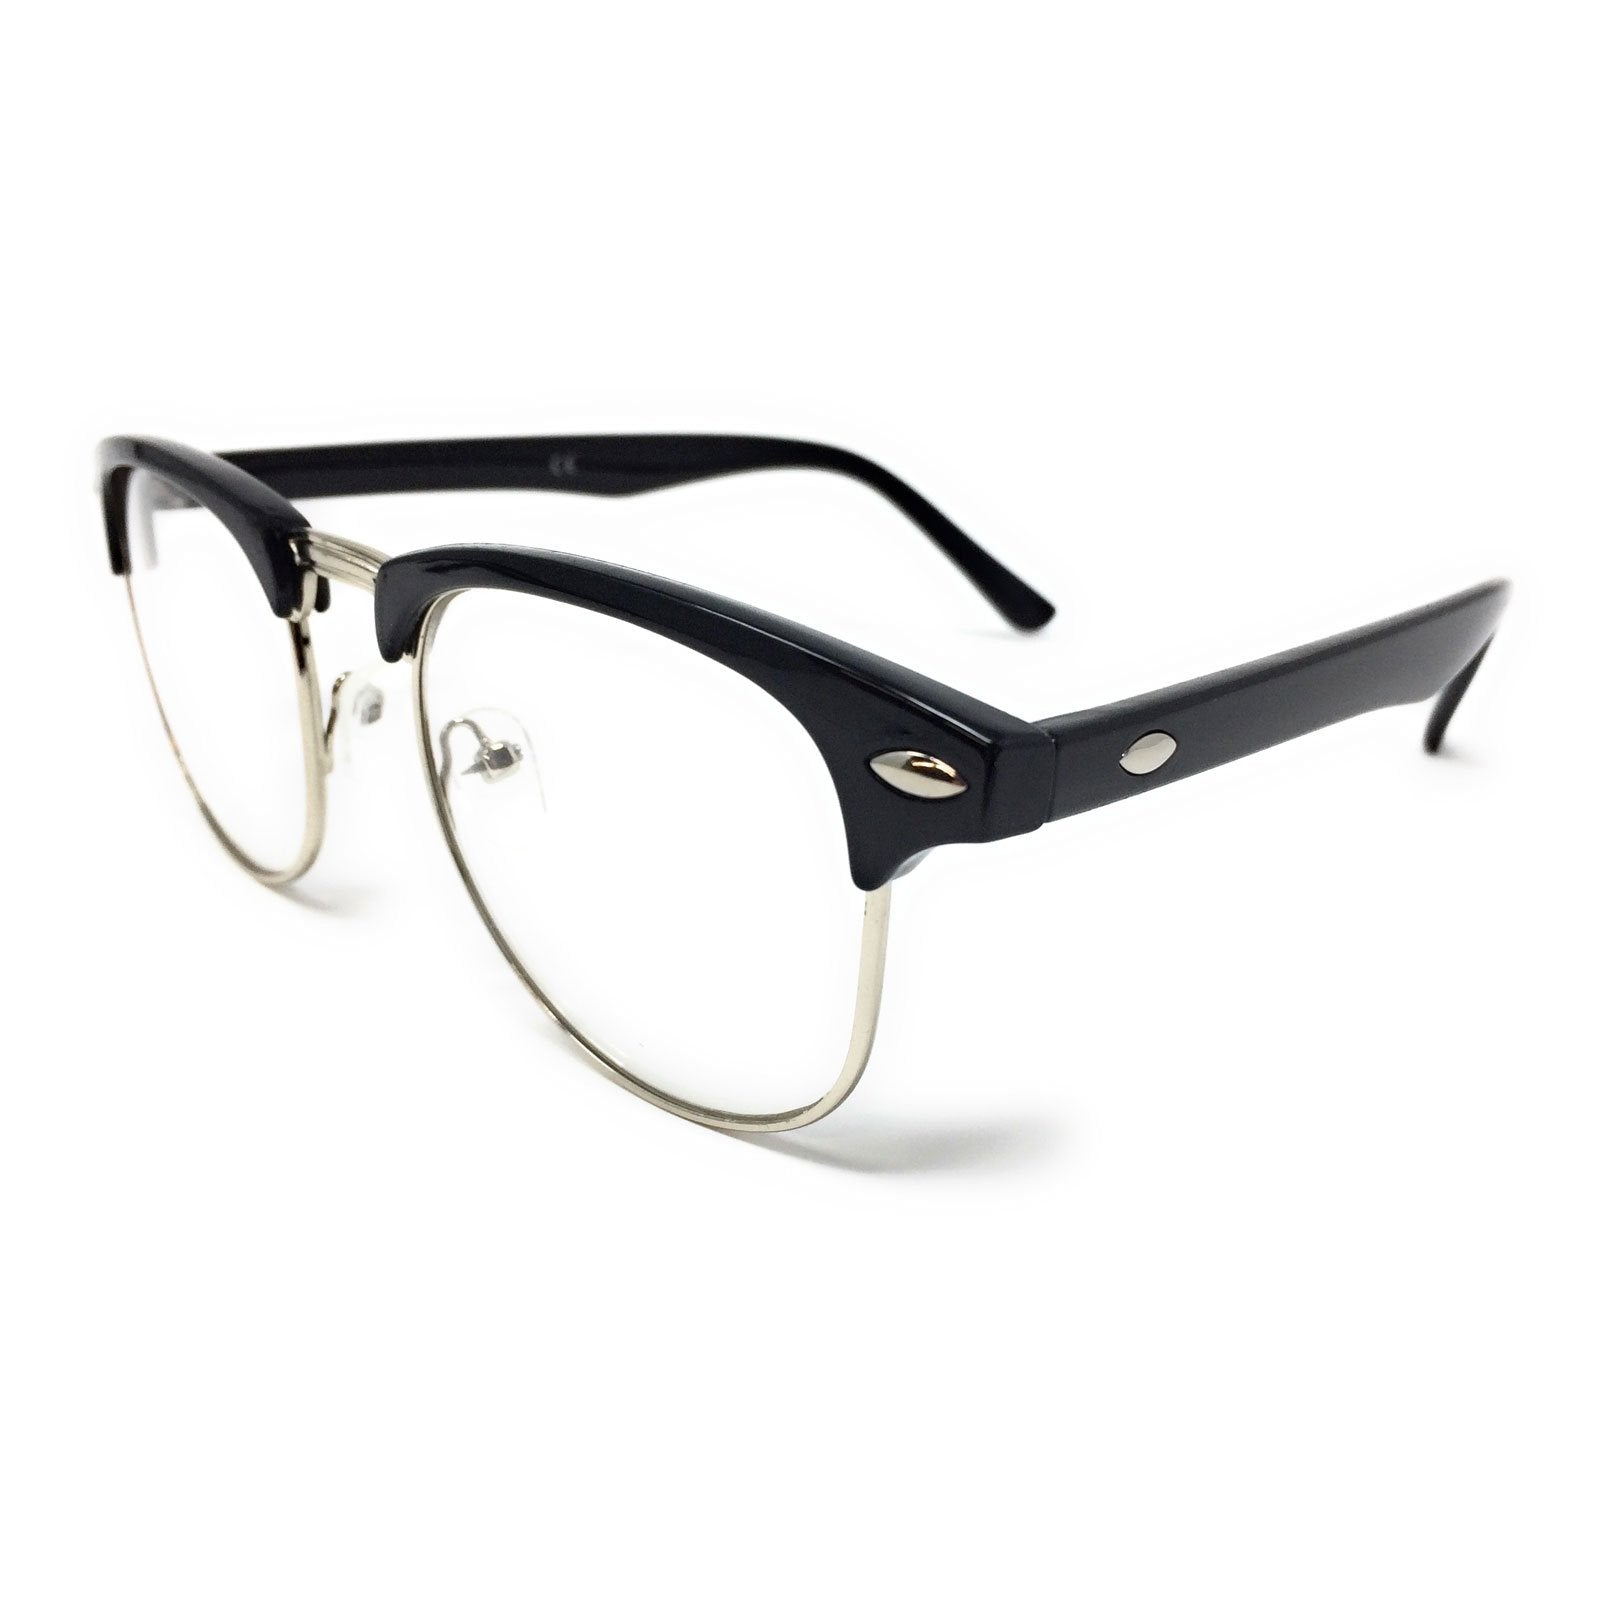 Wholesale Kids 1950s Half Rim Clear Lens Glasses - Black Frame